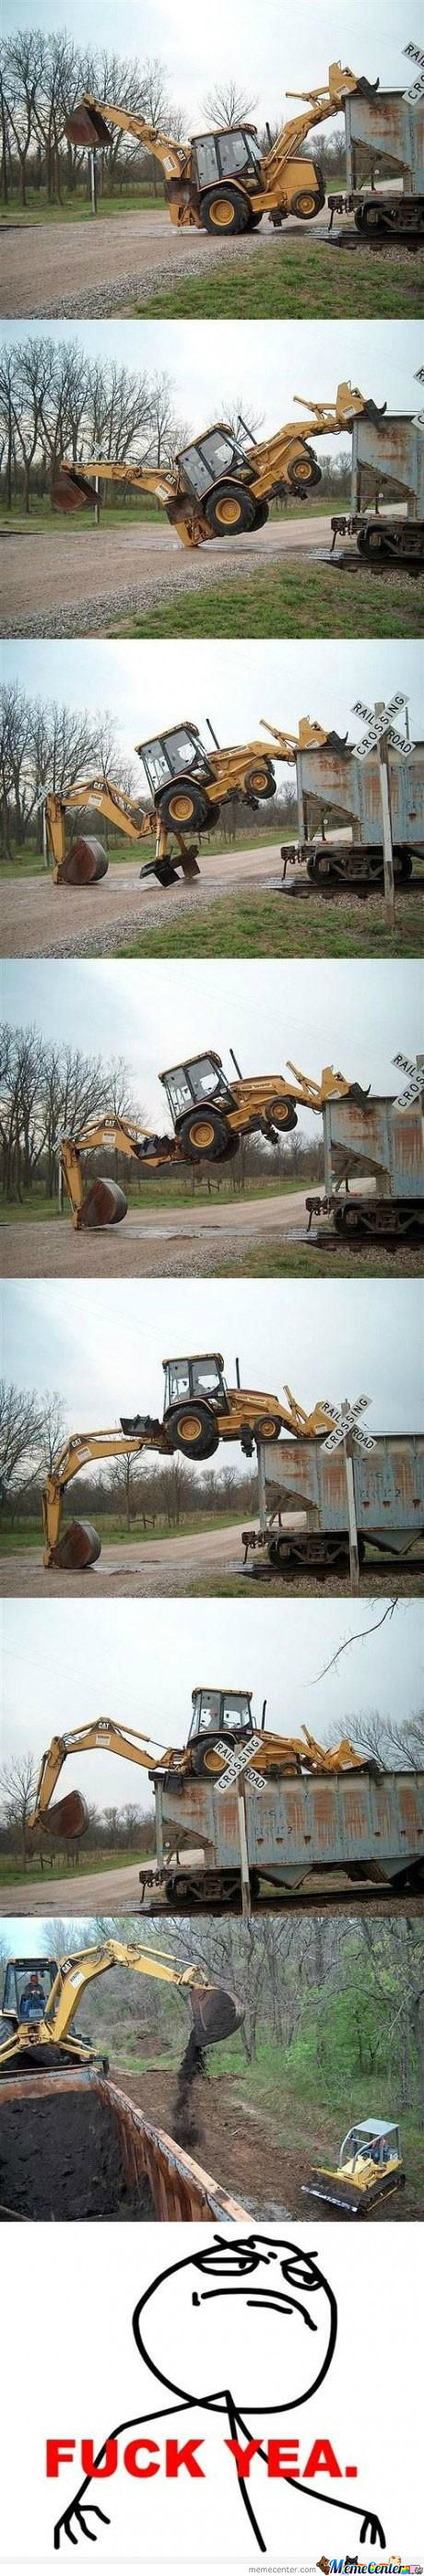 [RMX] Using Excavator Like a Boss